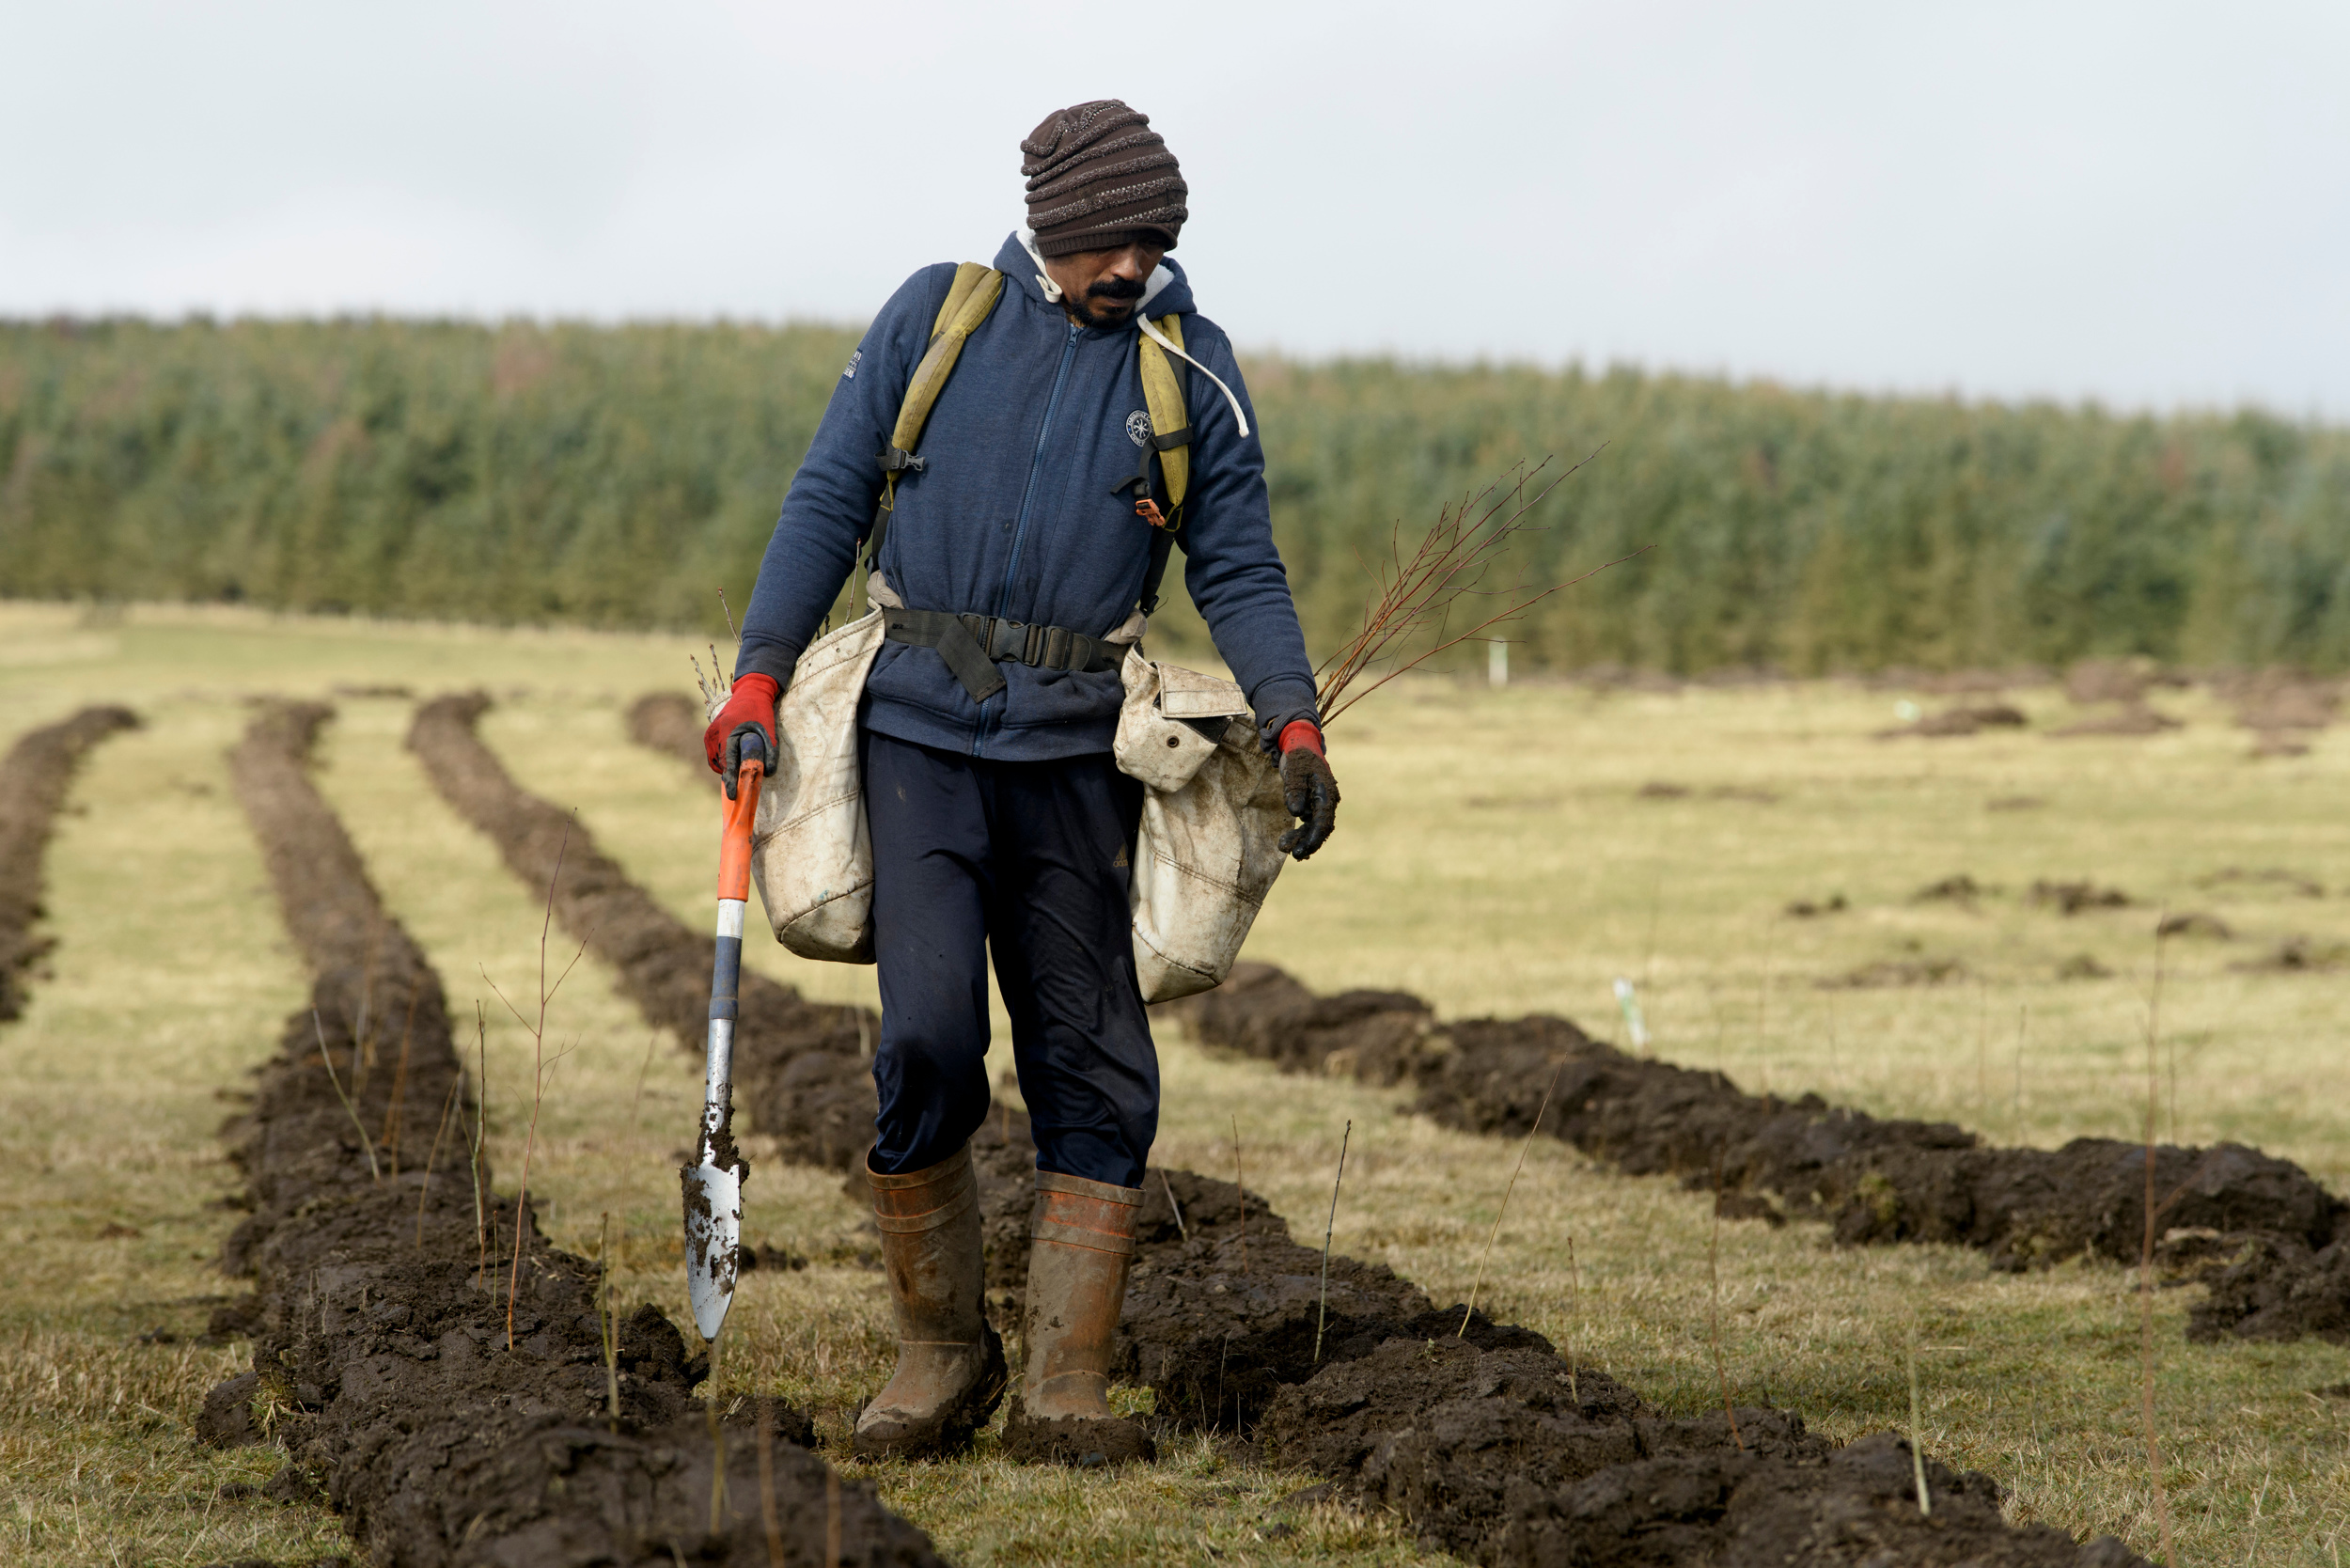 Tree planting is set to increase with ambitious targets for 18,000ha of afforestation per year.